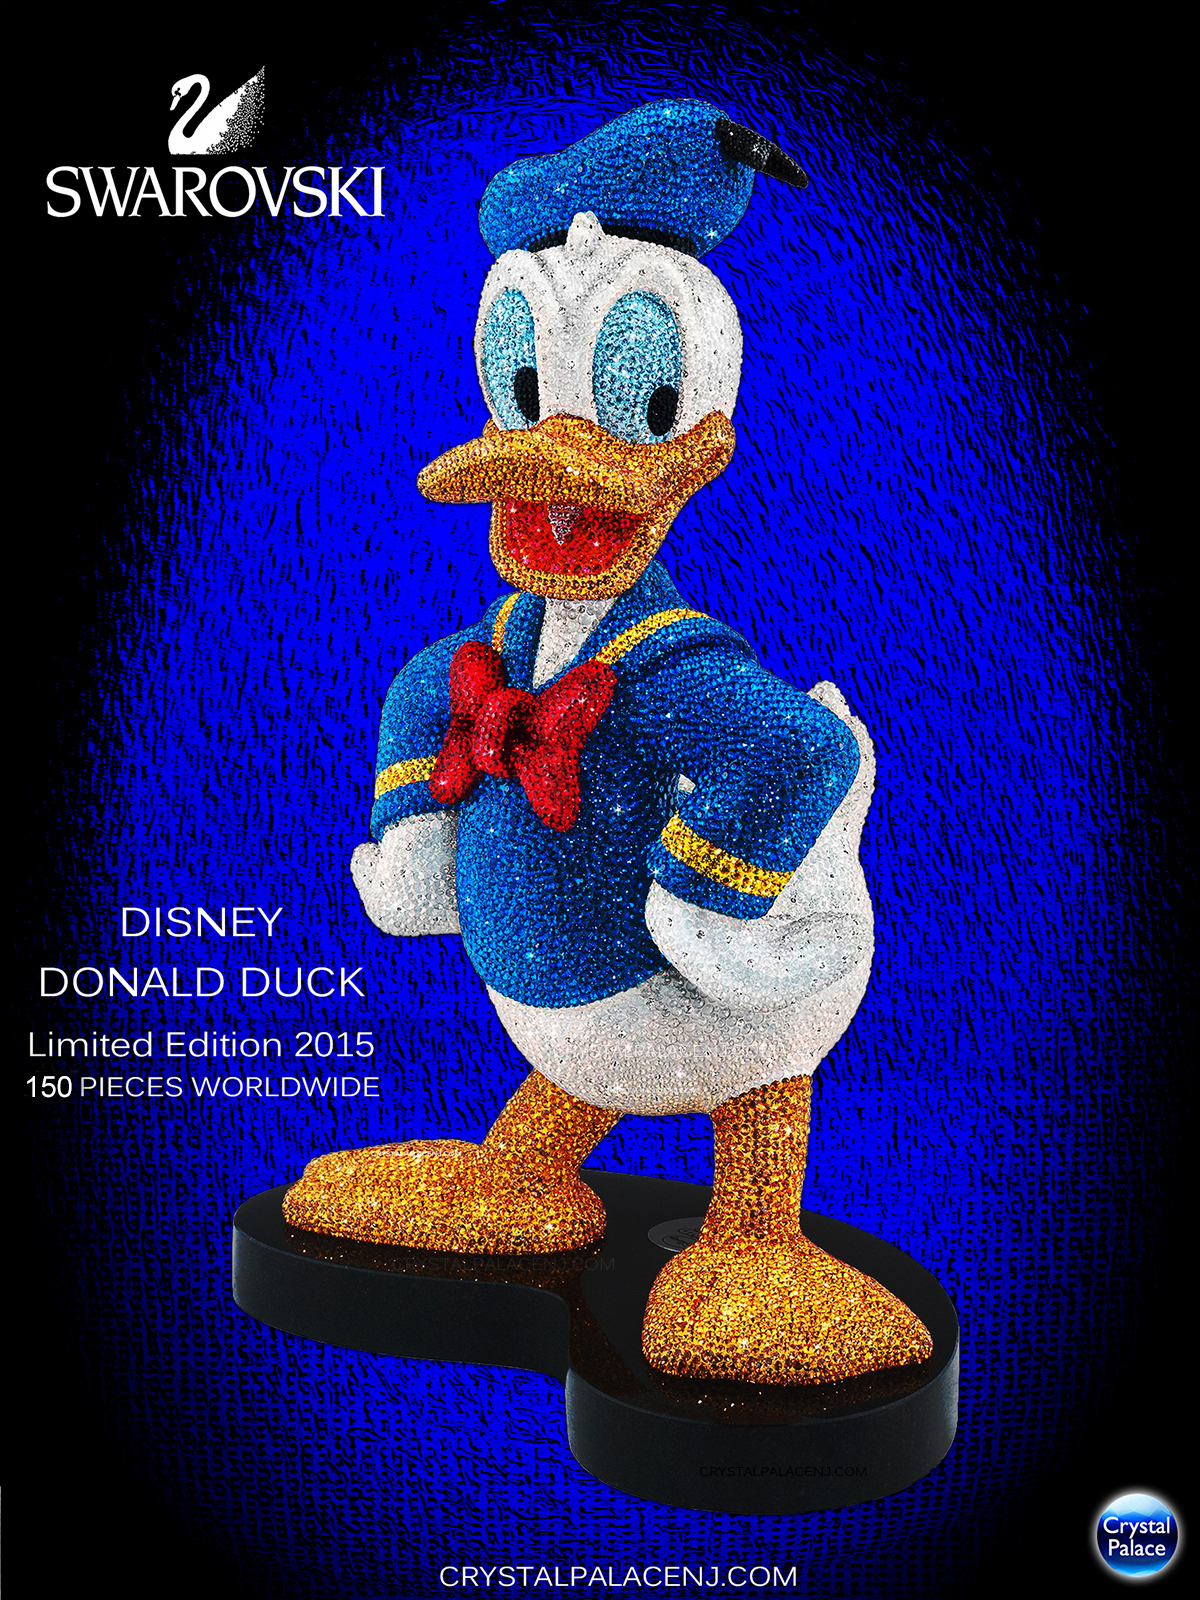 Swarovski Disney Donald Duck Limited Edition 2015